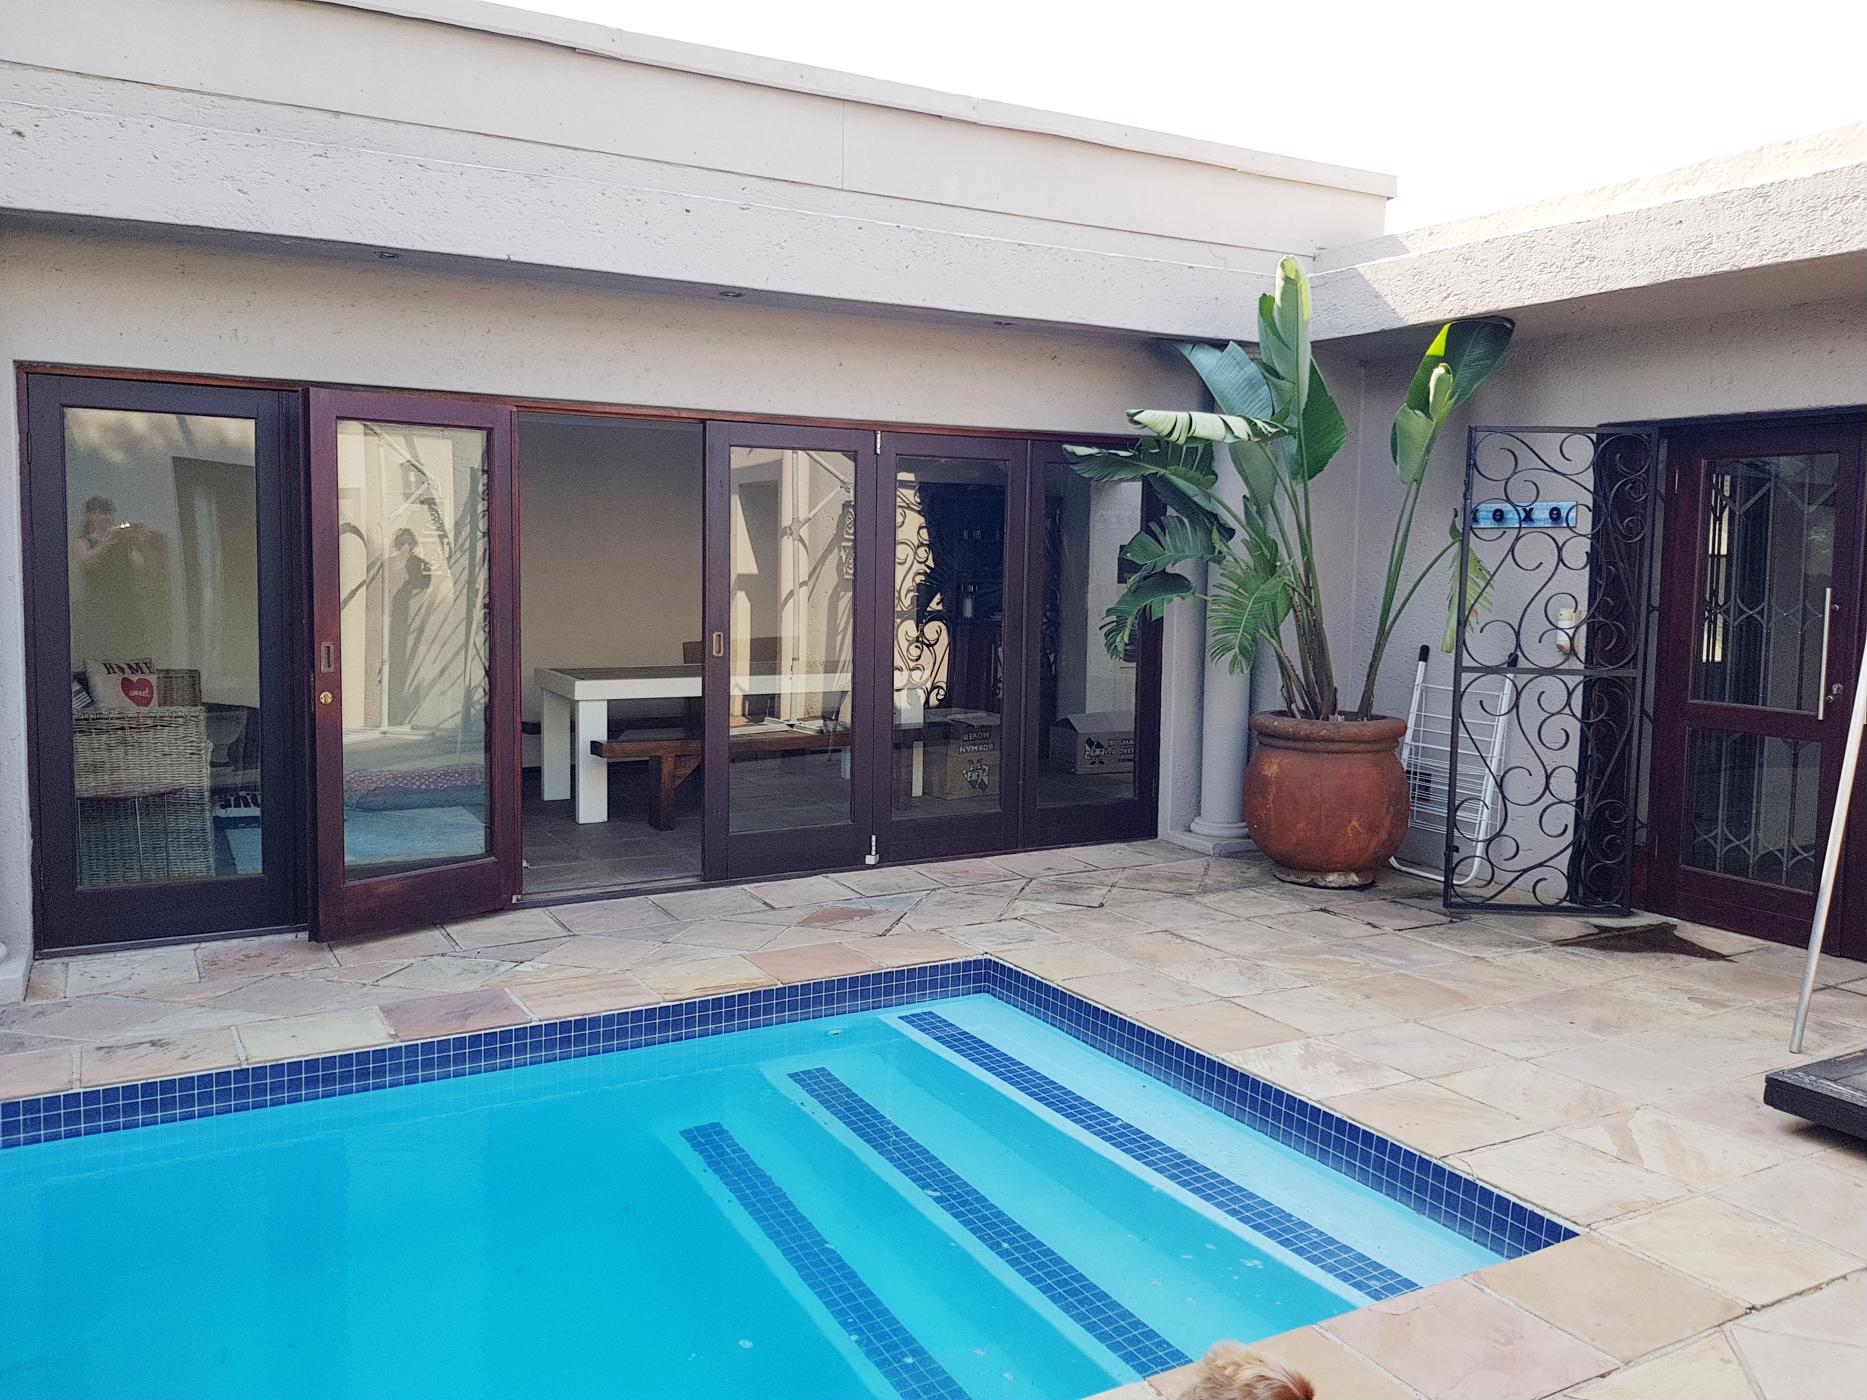 https://listing.pamgolding.co.za/images/properties/201811/311258/H/311258_H_44.jpg